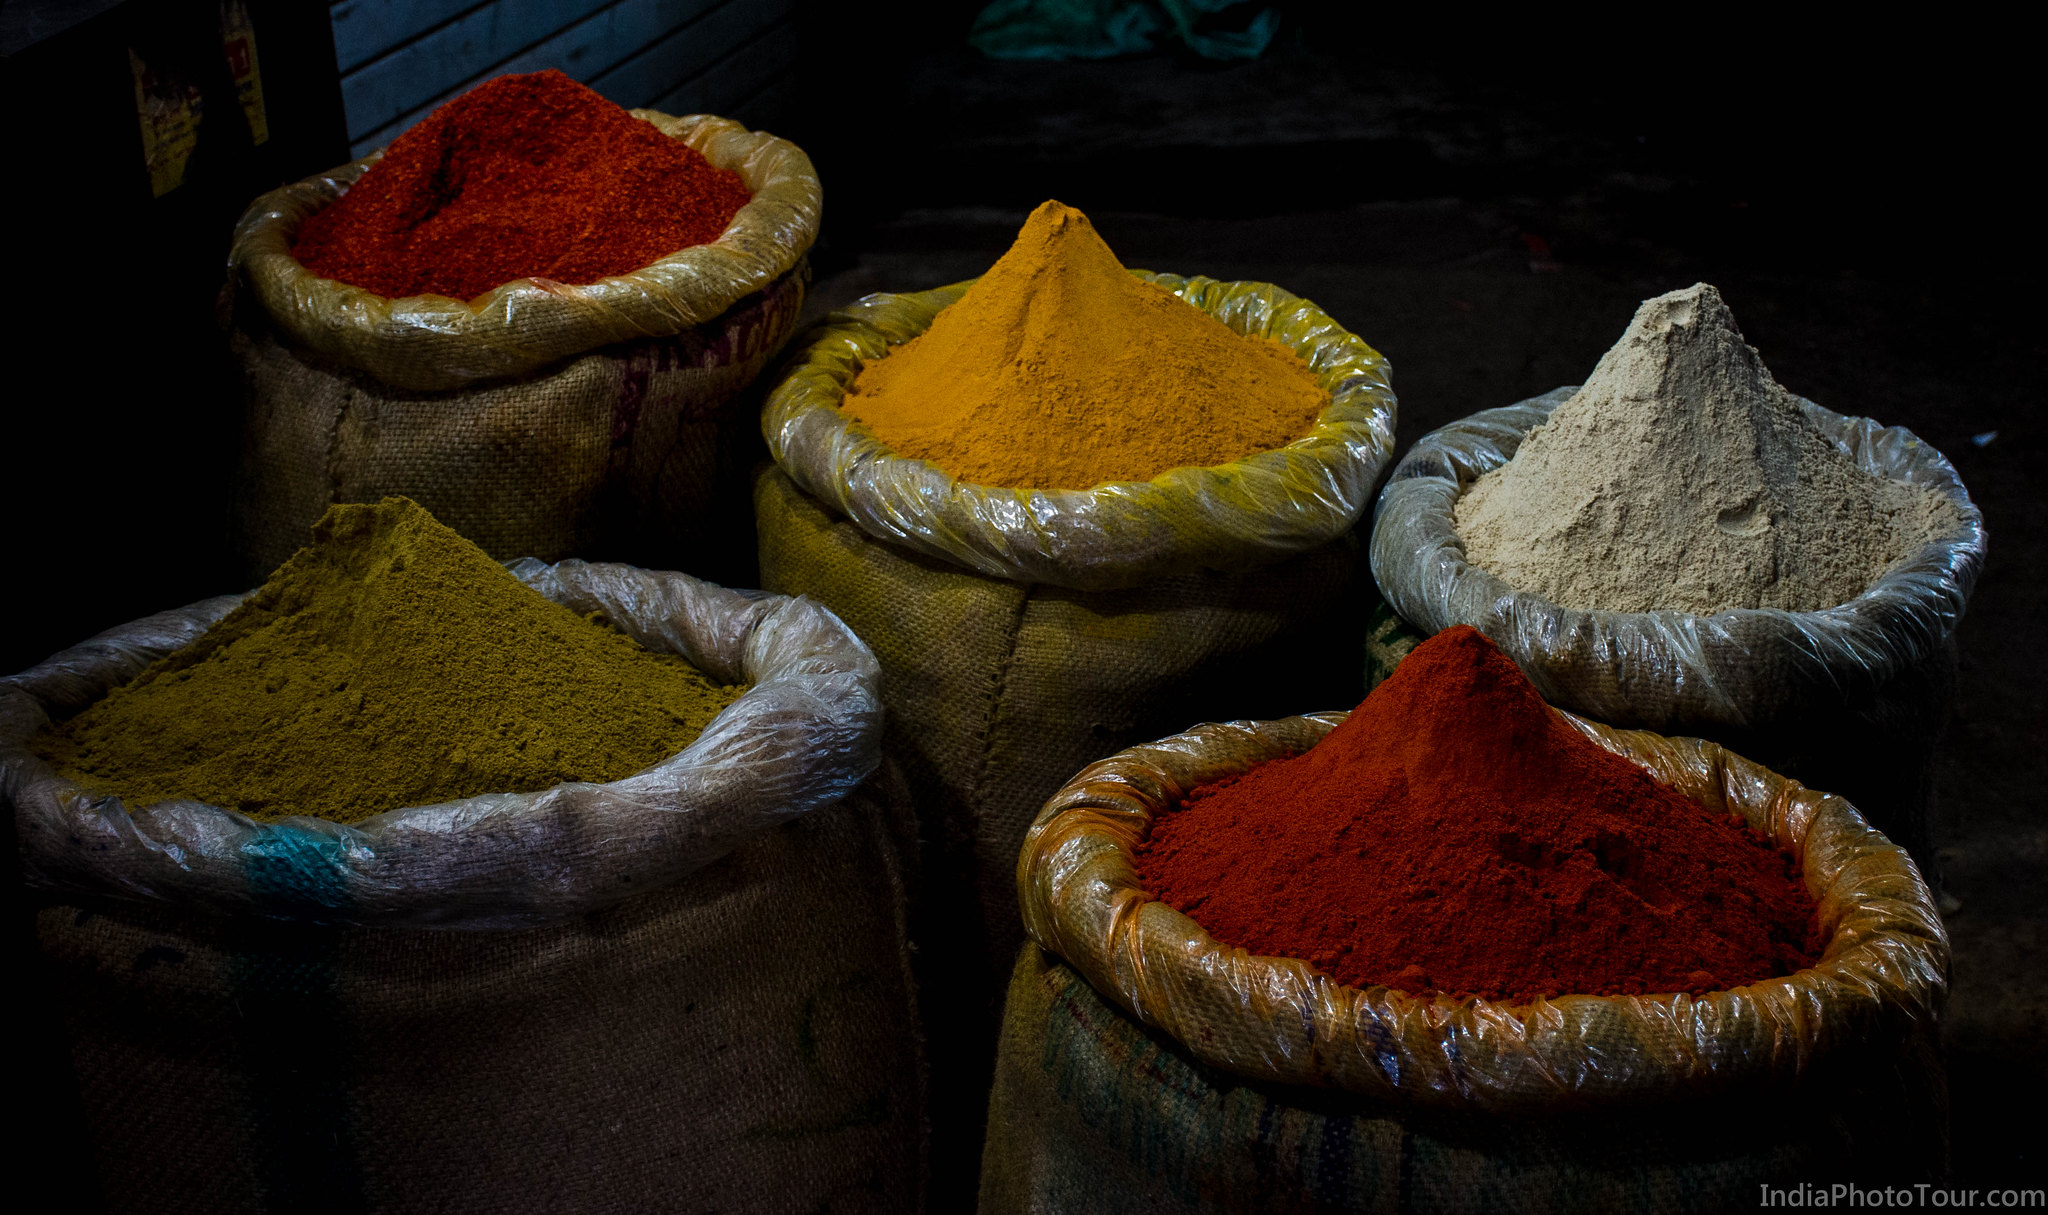 Crushed spices for sale in the spice market of Khari Baoli